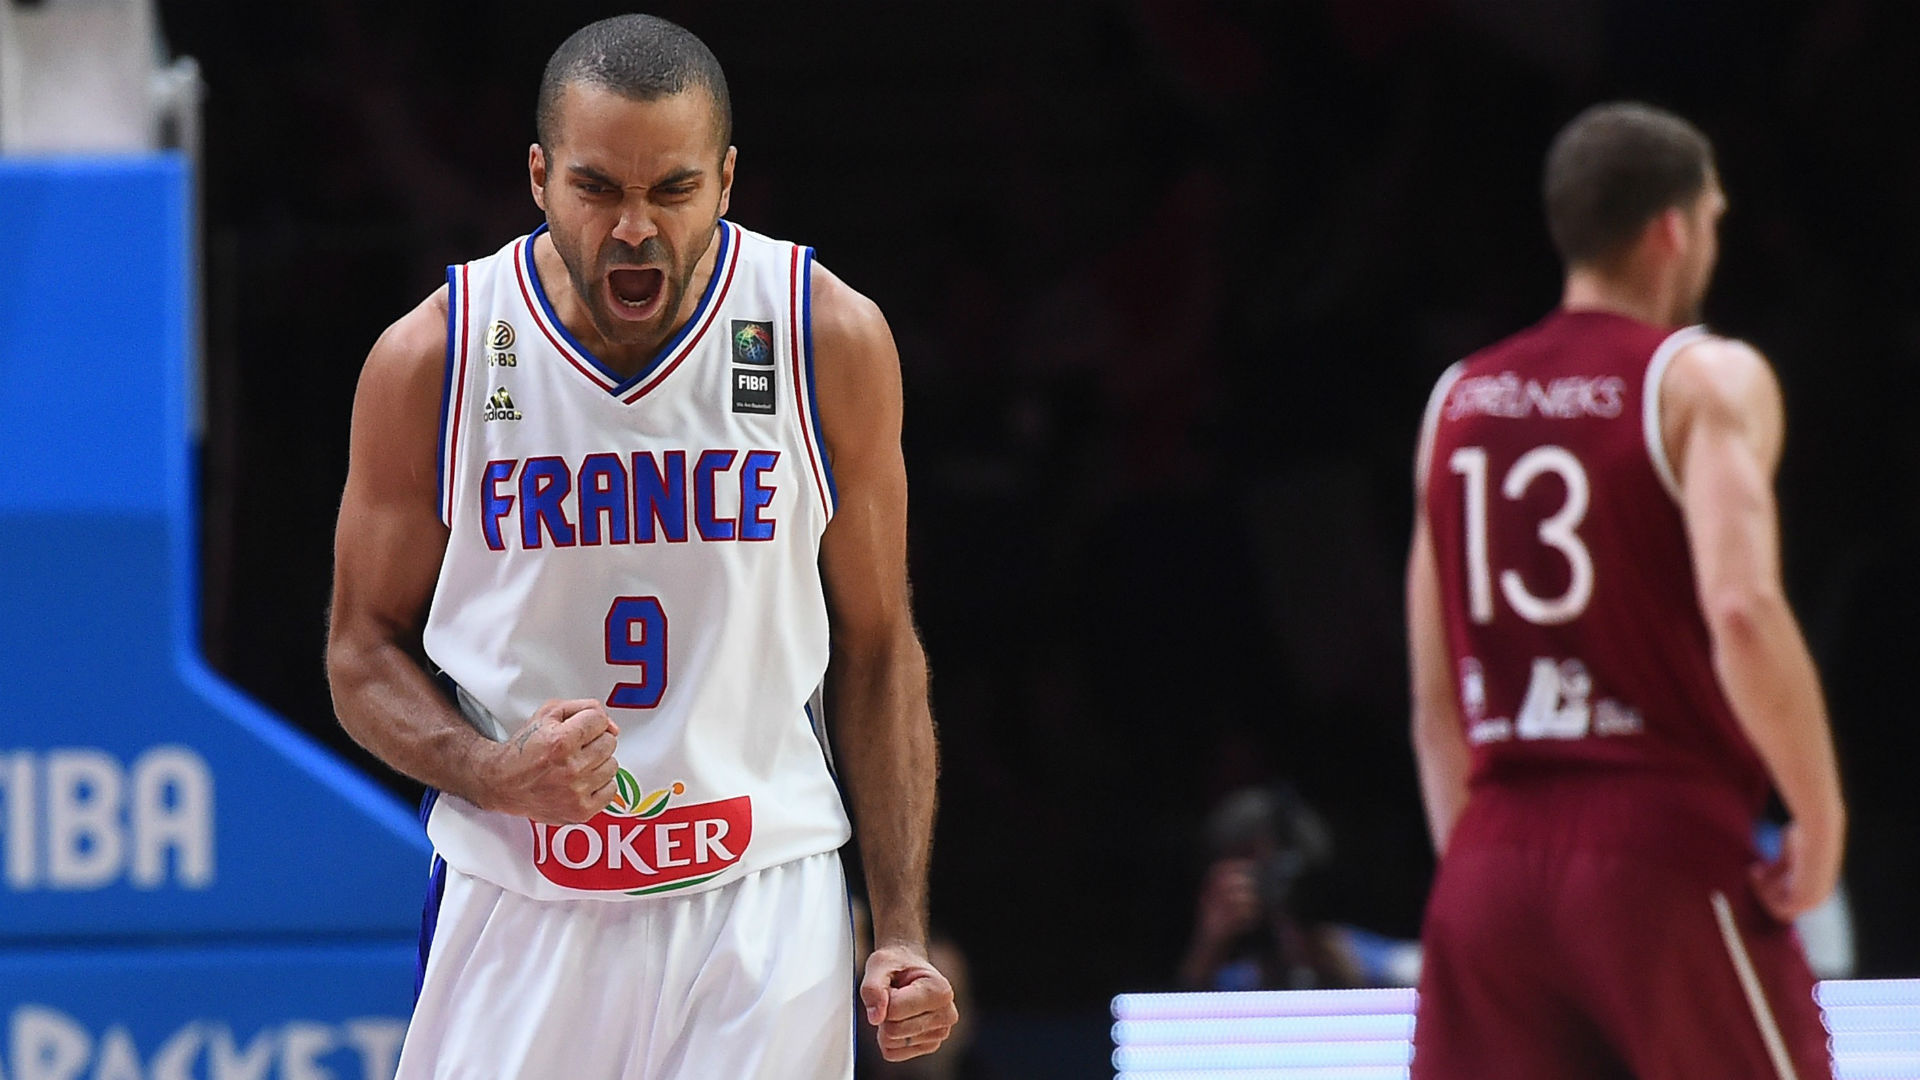 Tony parker has change of heart will play for france in olympic tony parker has change of heart will play for france in olympic qualifiers nba sporting news voltagebd Choice Image